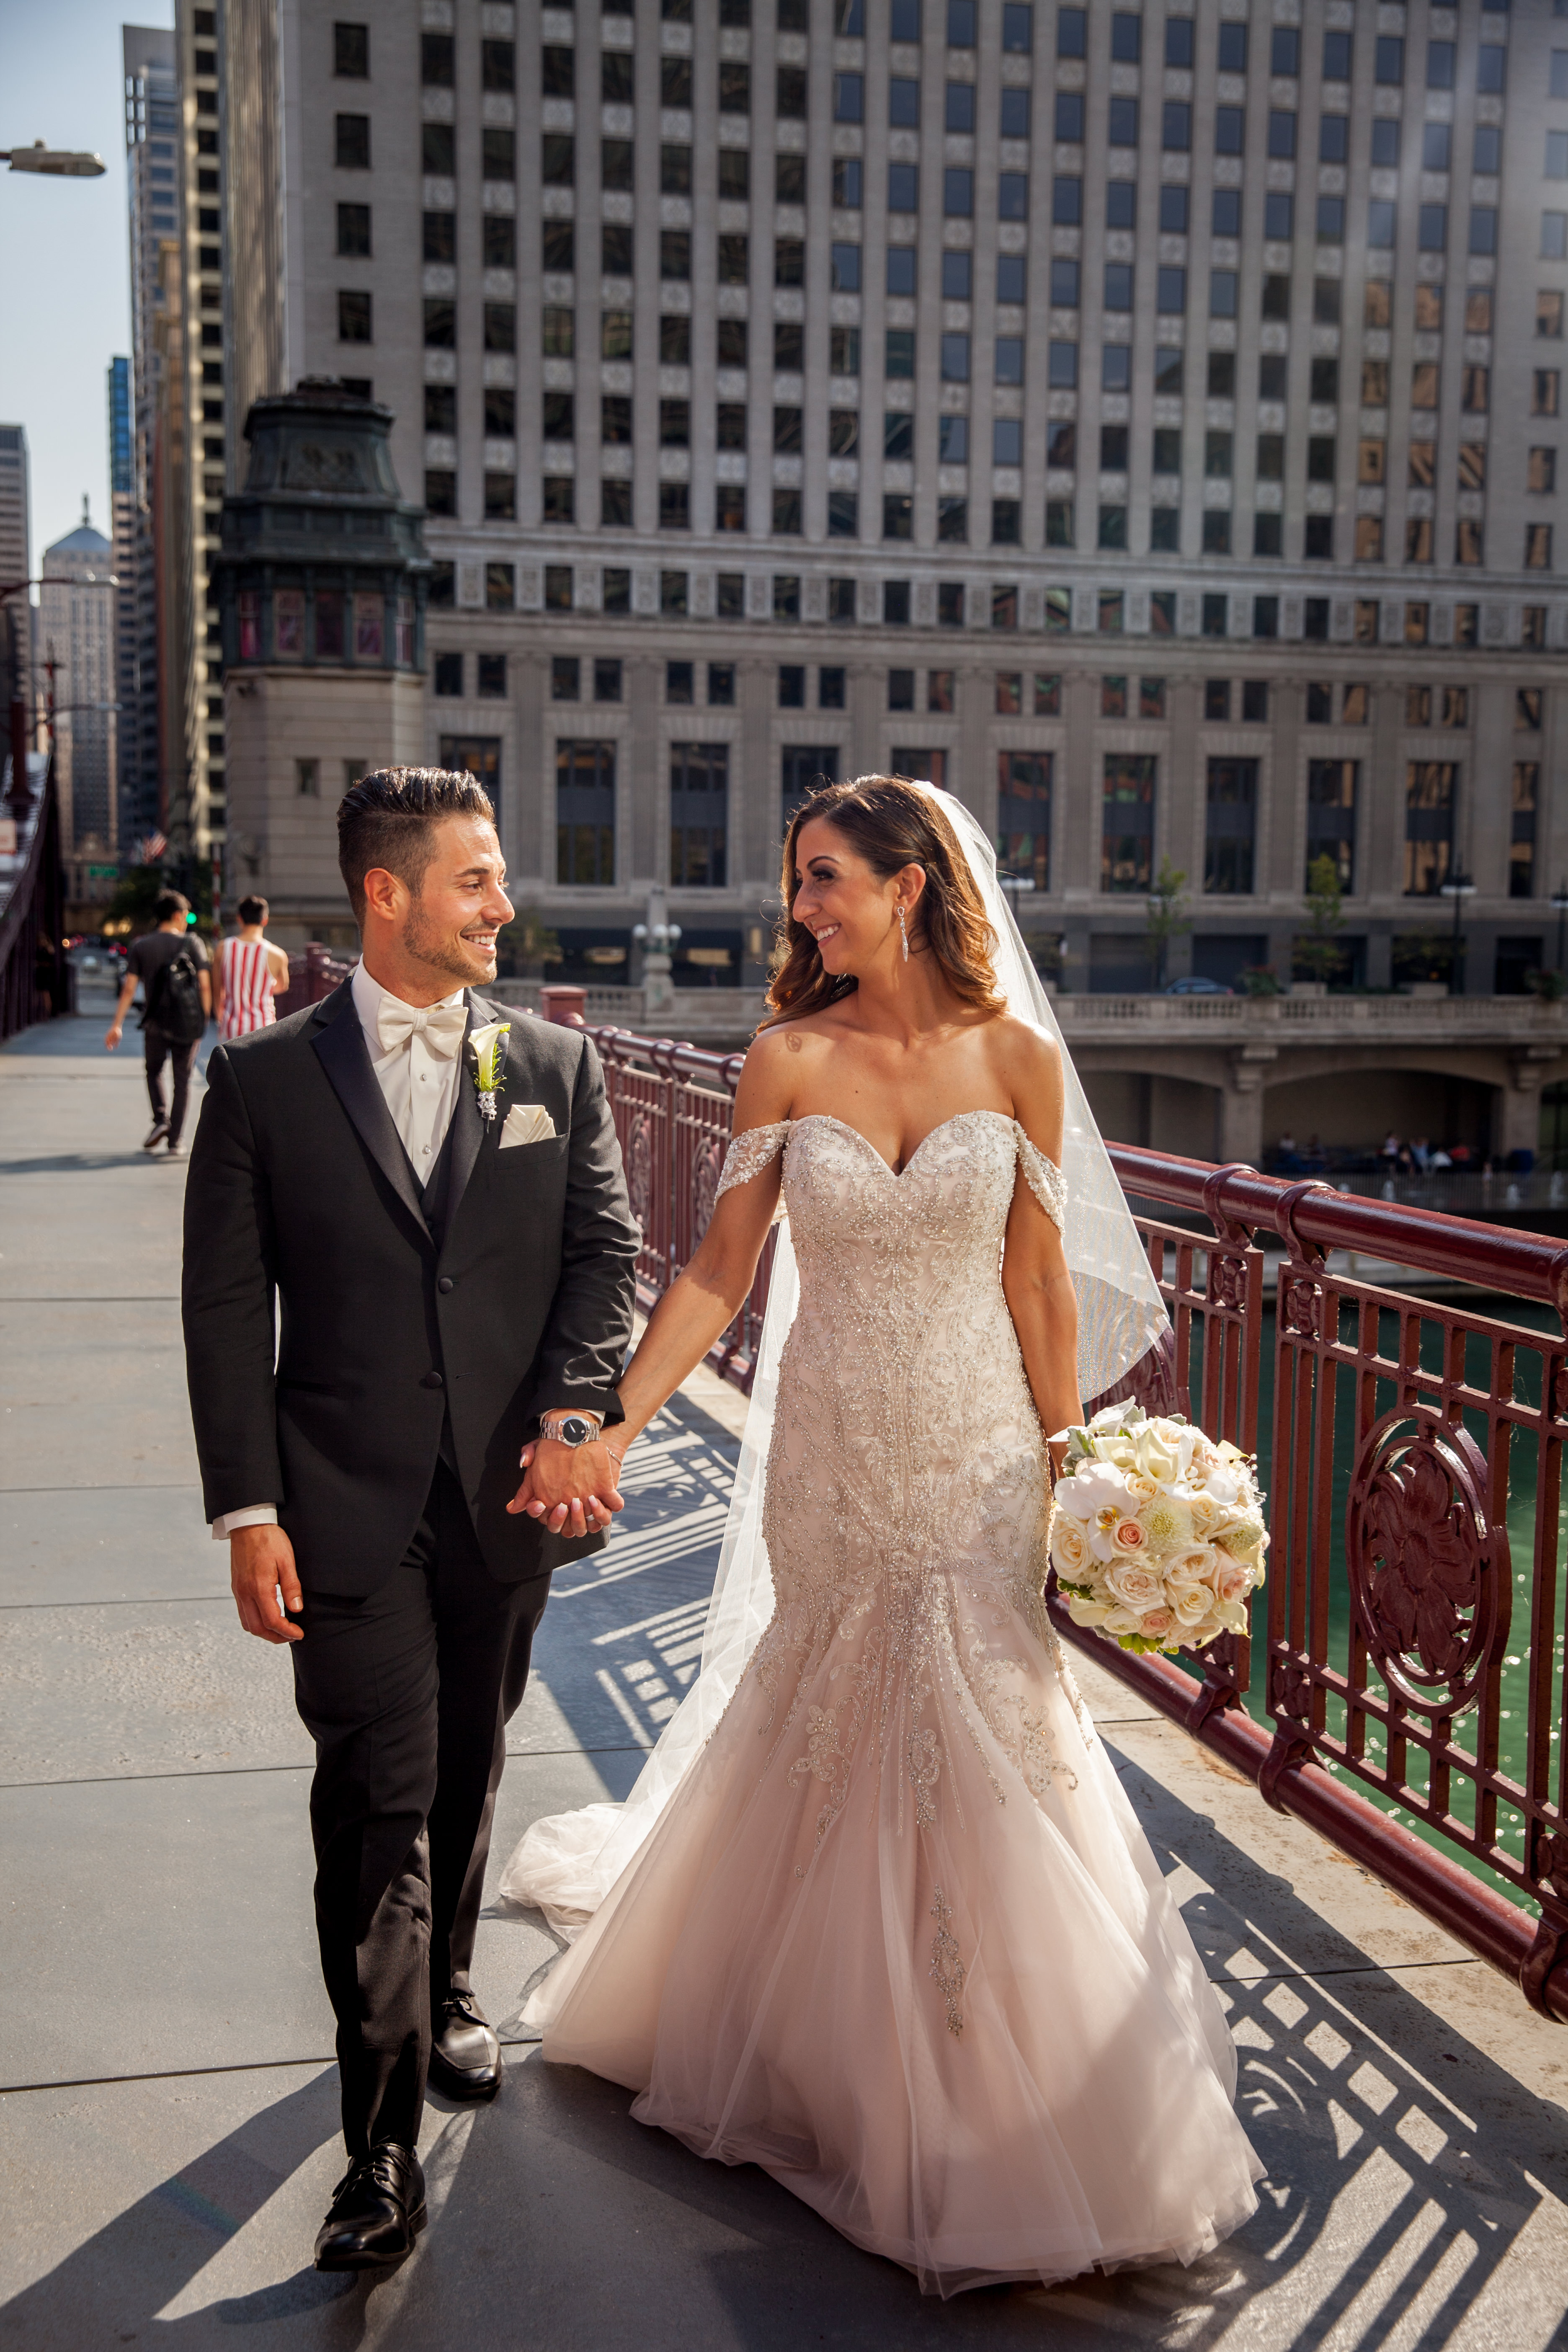 A Shimmering Wedding - The Estate by Gene & Georgetti